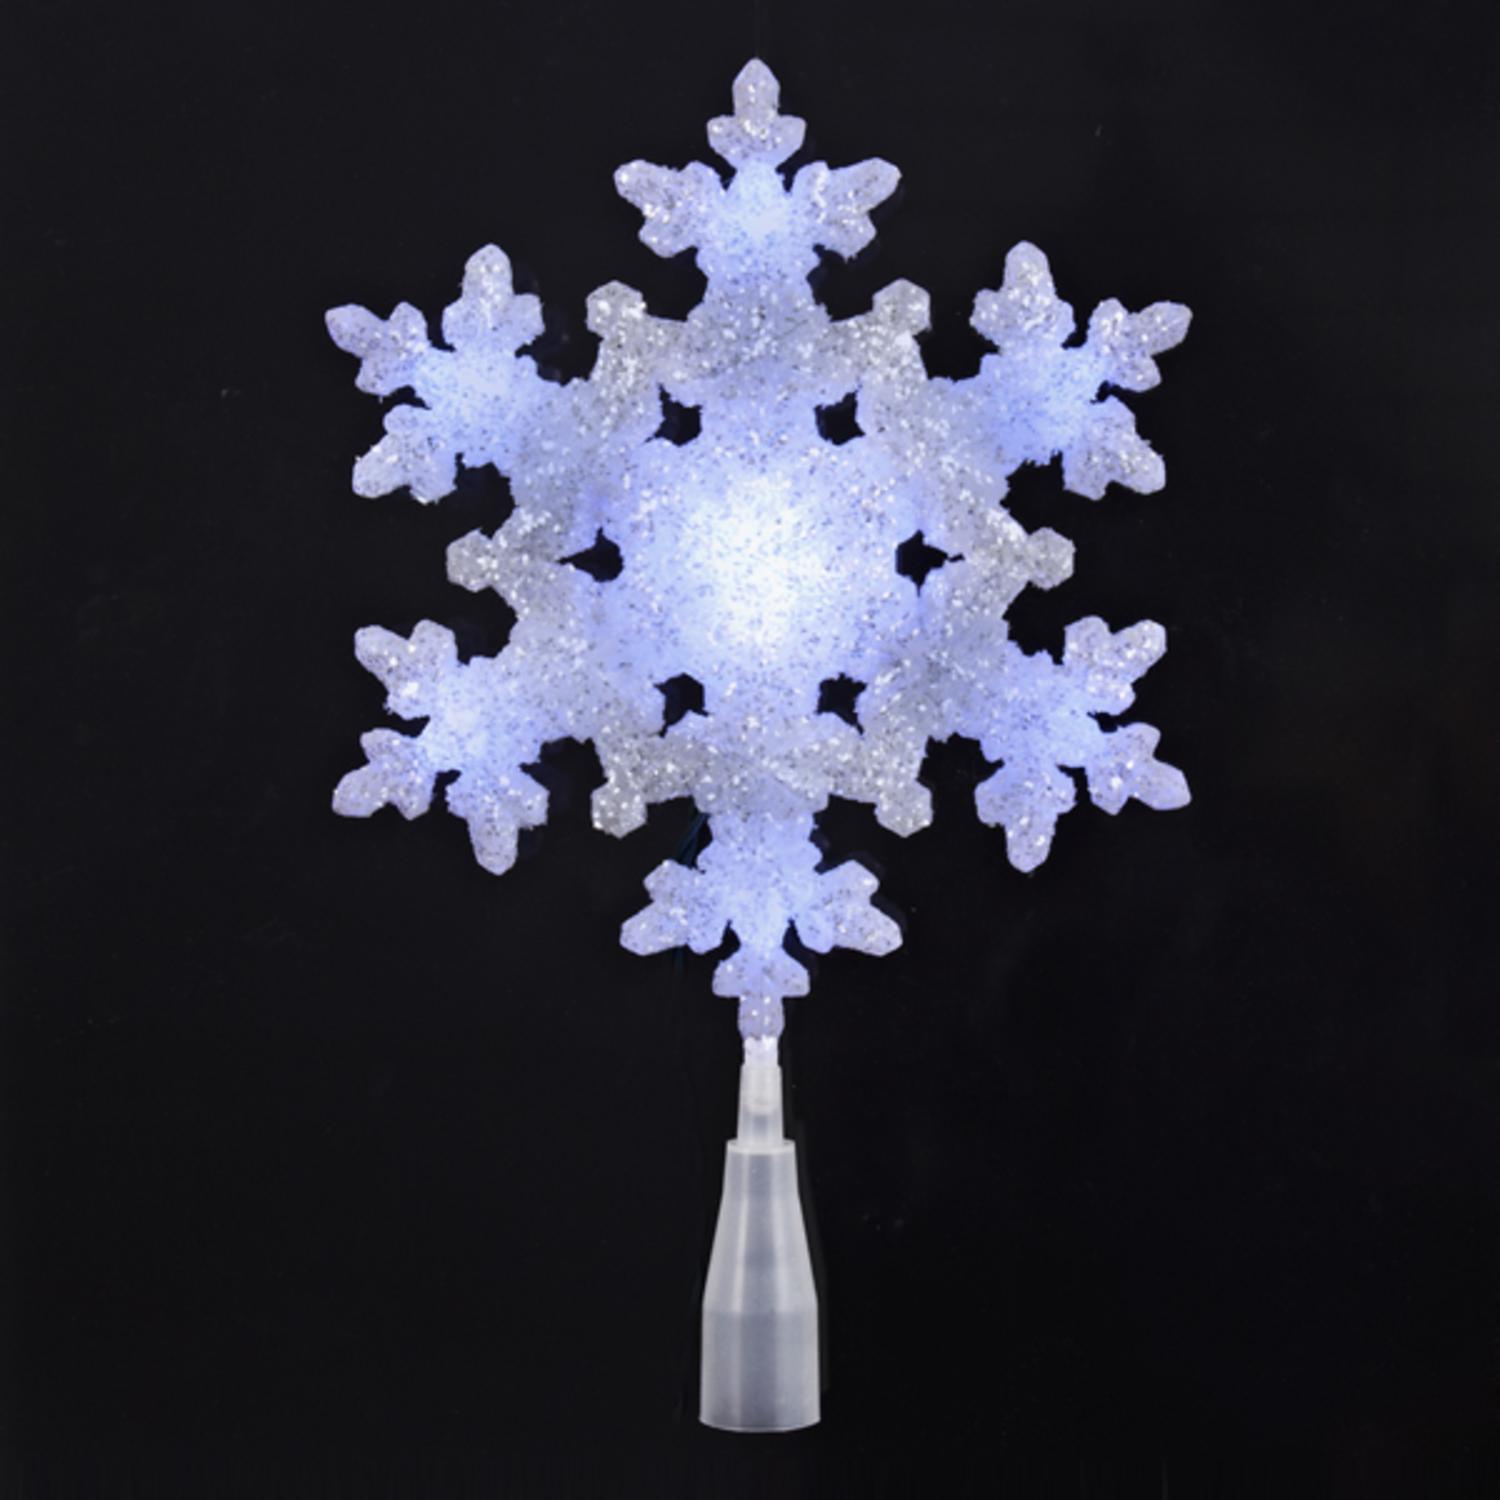 """9.25"""" LED Lighted White and Blue Sparkly Snowflake Christmas Tree Topper - Clear Lights"""